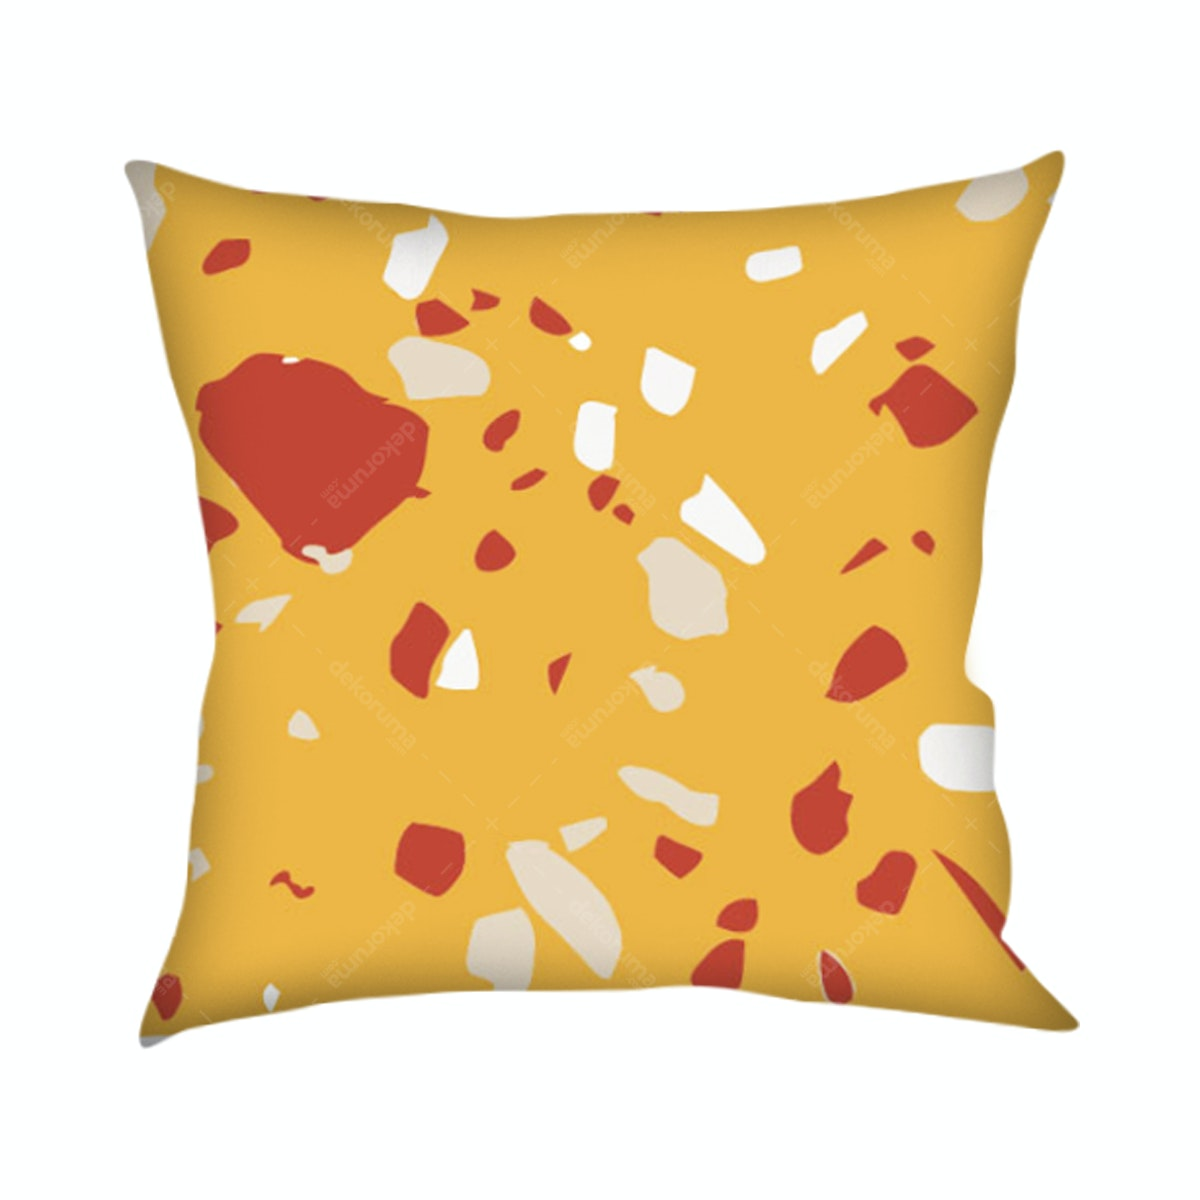 On&On Terrazzo 2 Cushion 40x40cm (Insert+Cover)